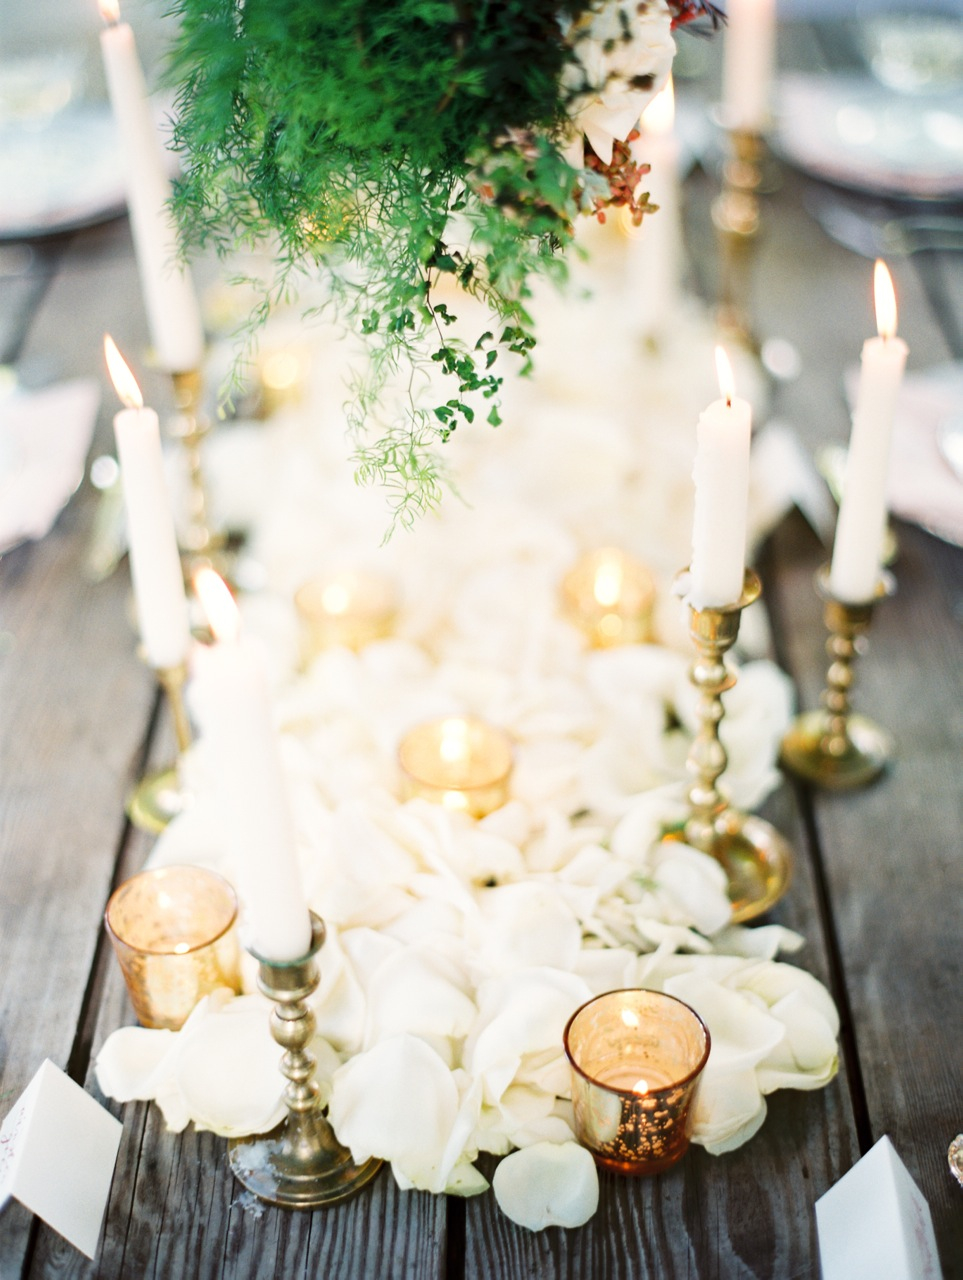 Flowers & Decor, Real Weddings, Wedding Style, Centerpieces, Candles, West Coast Real Weddings, Garden Real Weddings, Garden Weddings, Classic Wedding Flowers & Decor, Romantic Real Weddings, Romantic Weddings